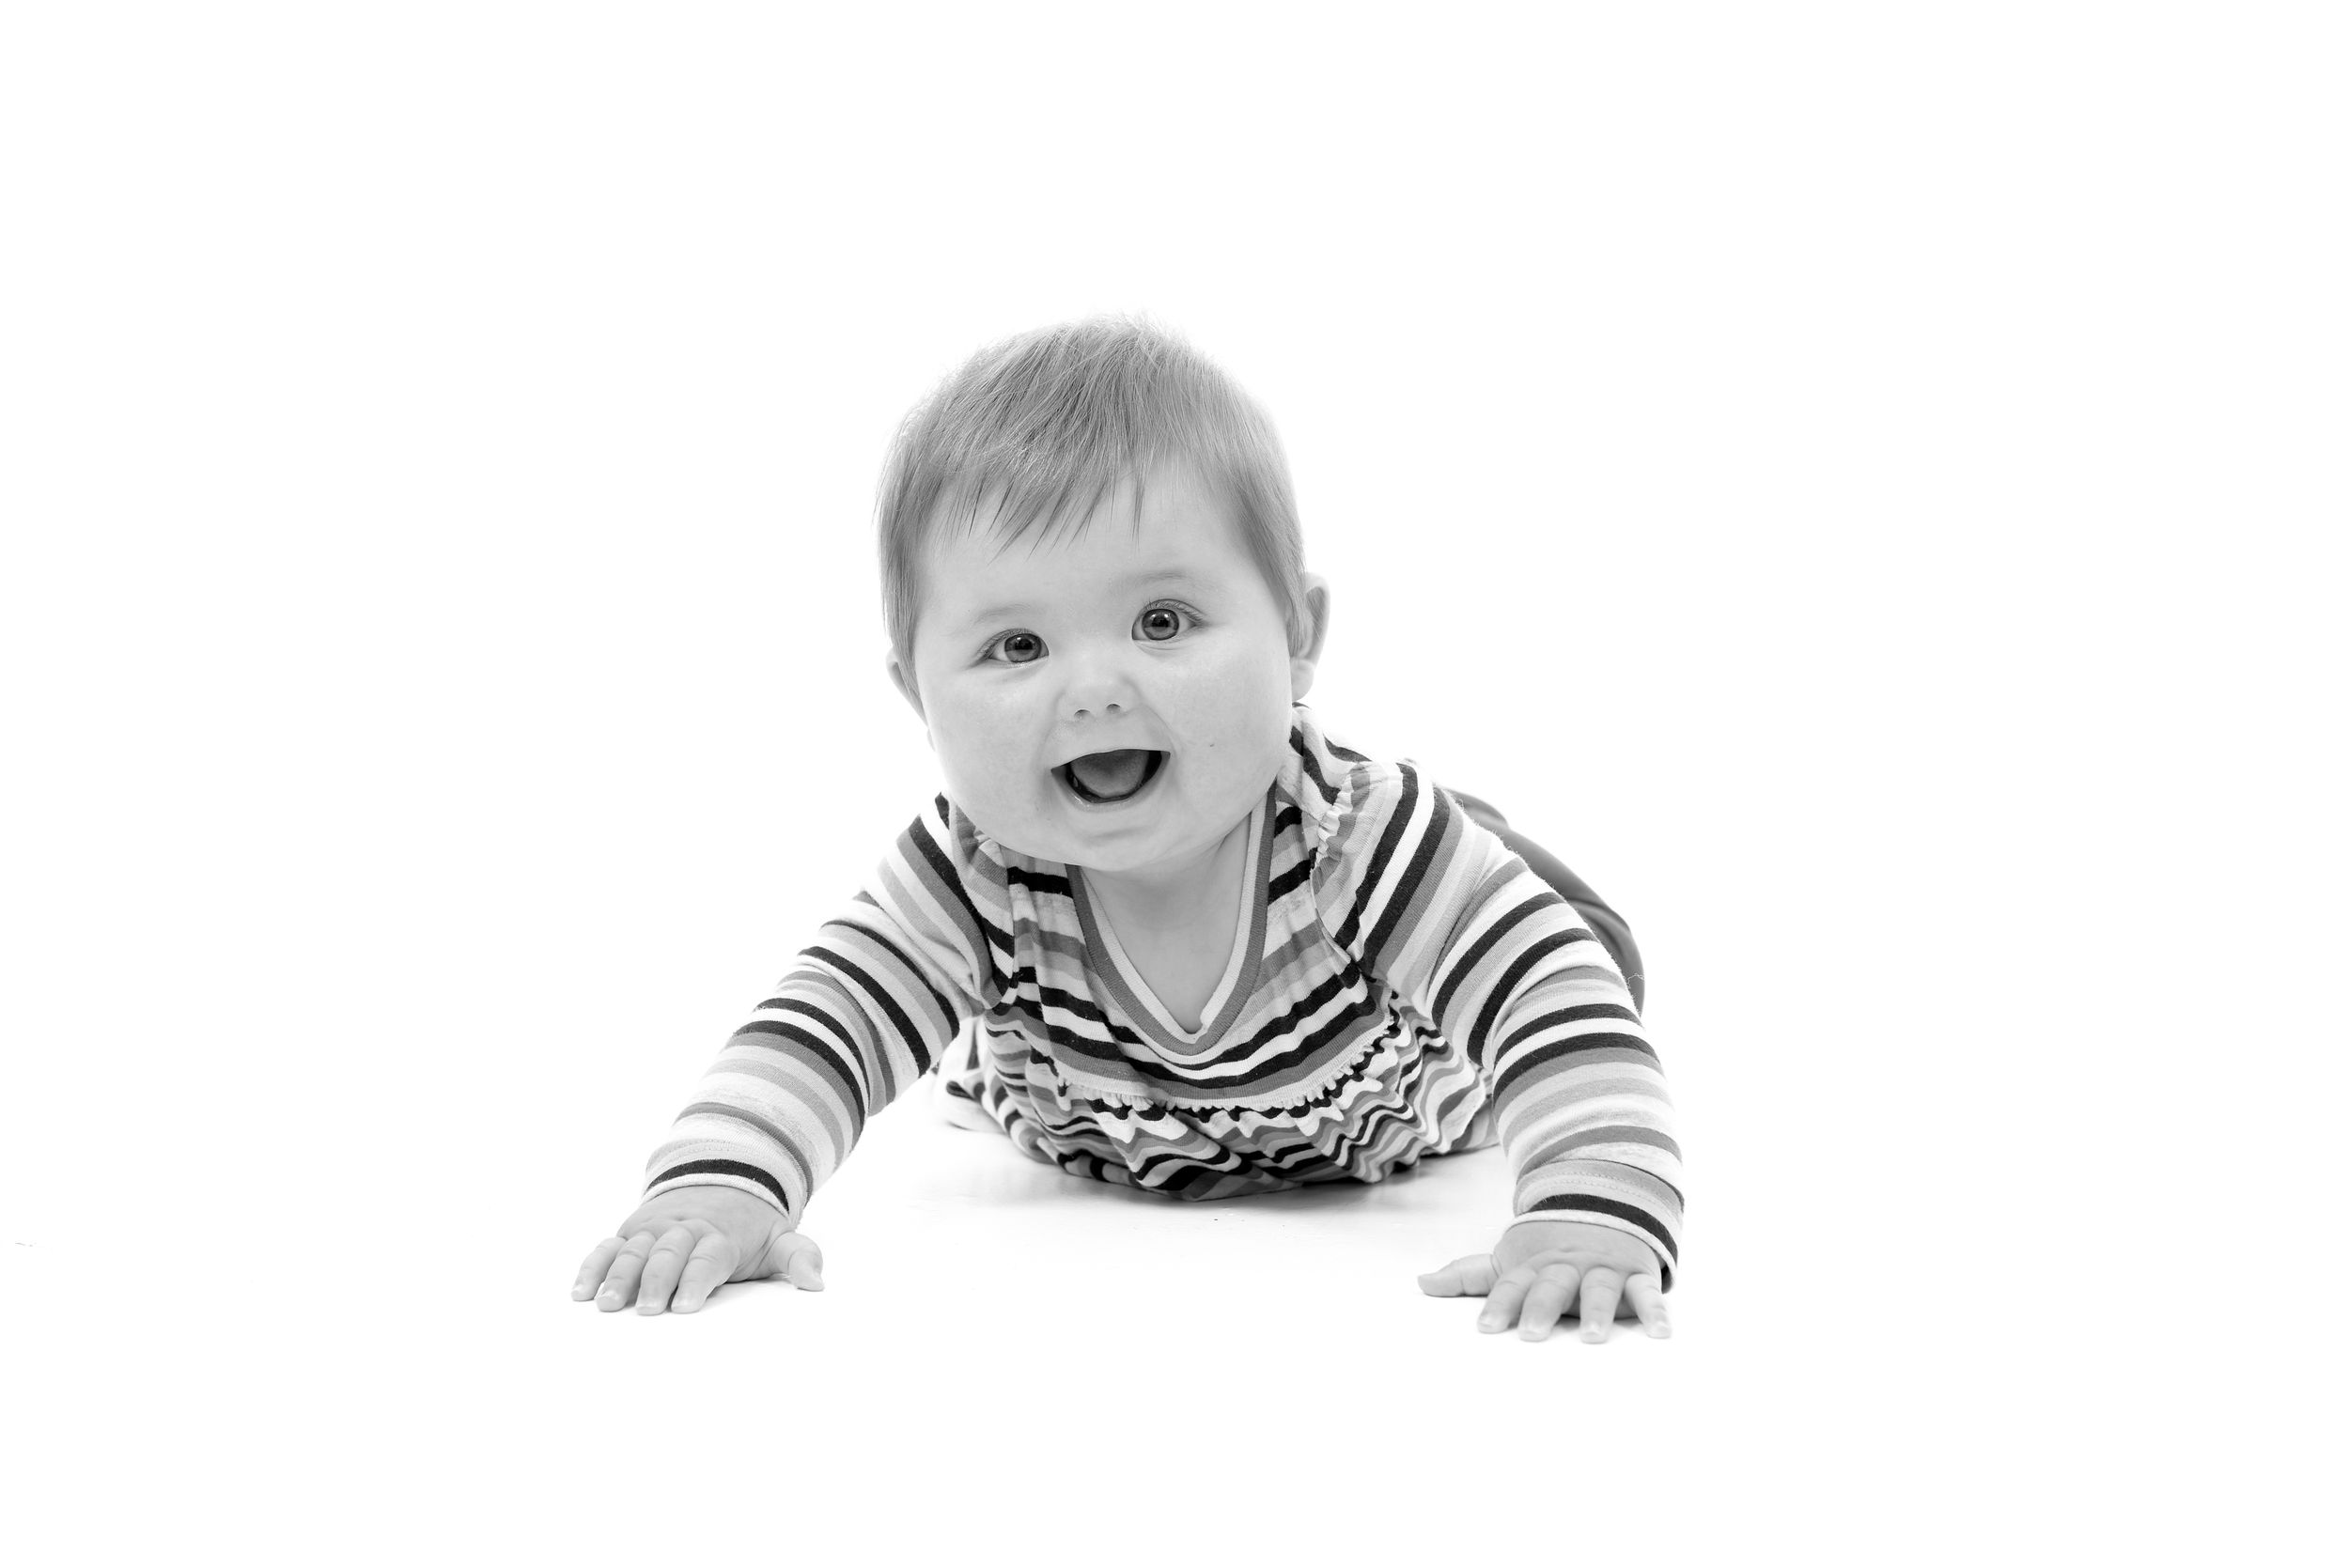 Family Black and White Studio Portrait Photography Oxfordshire Oxford Photographer